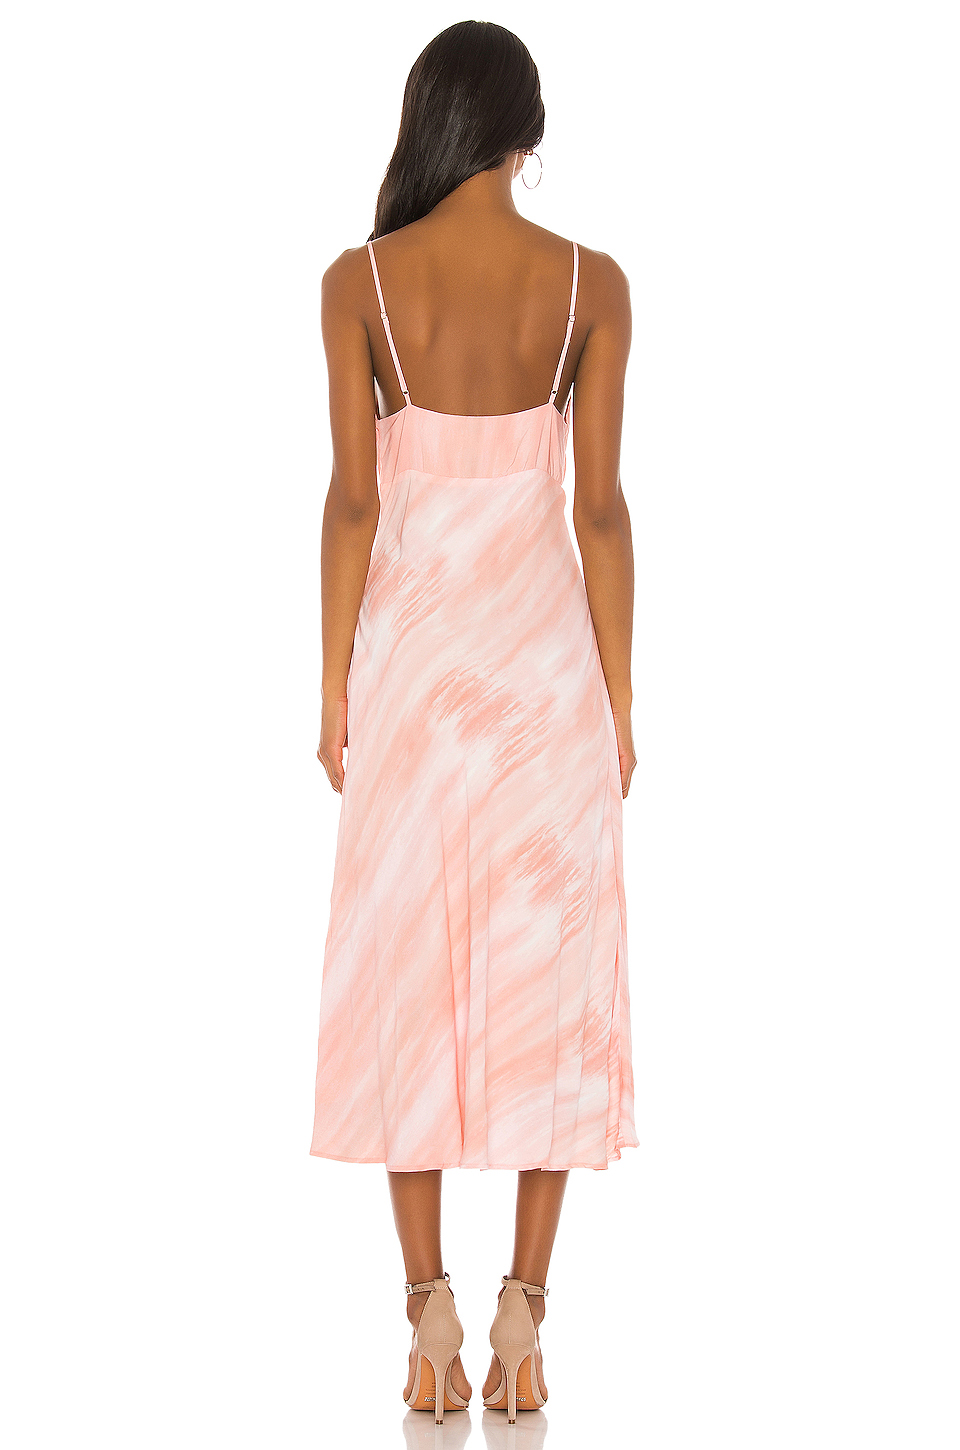 Privacy Please Bermuda Midi Dress